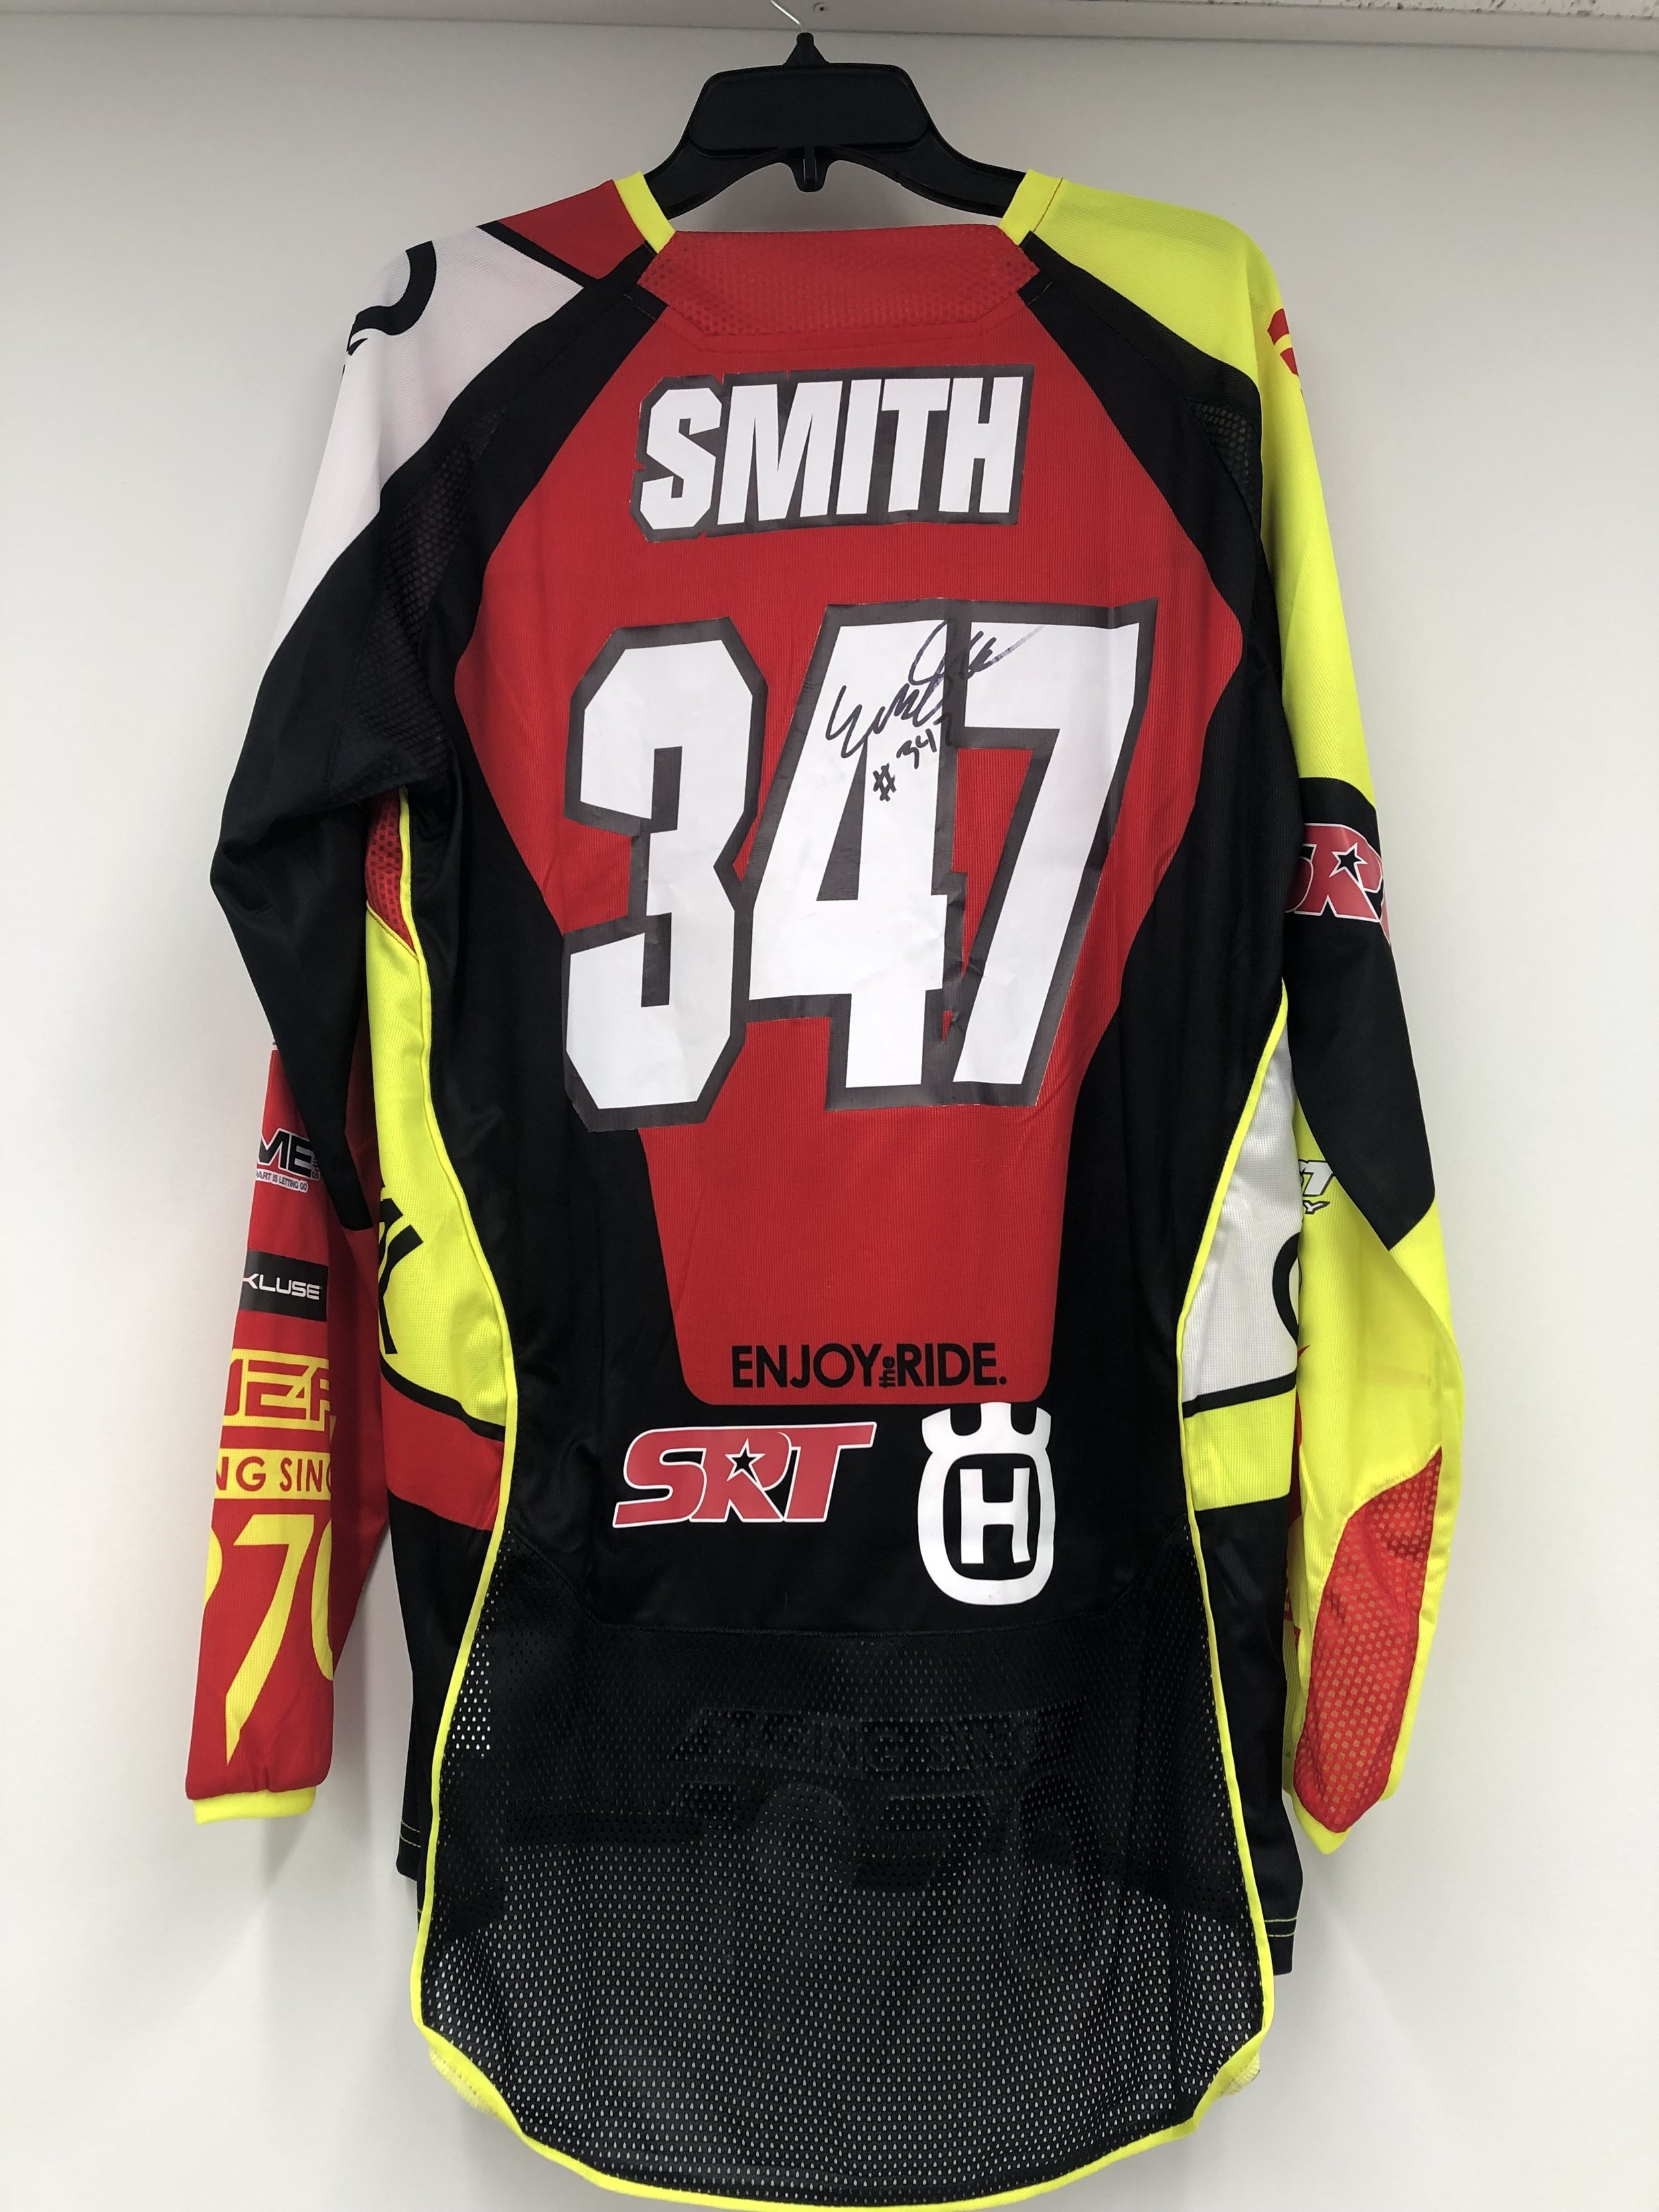 Click the image to bid on Evan Smith Jersey